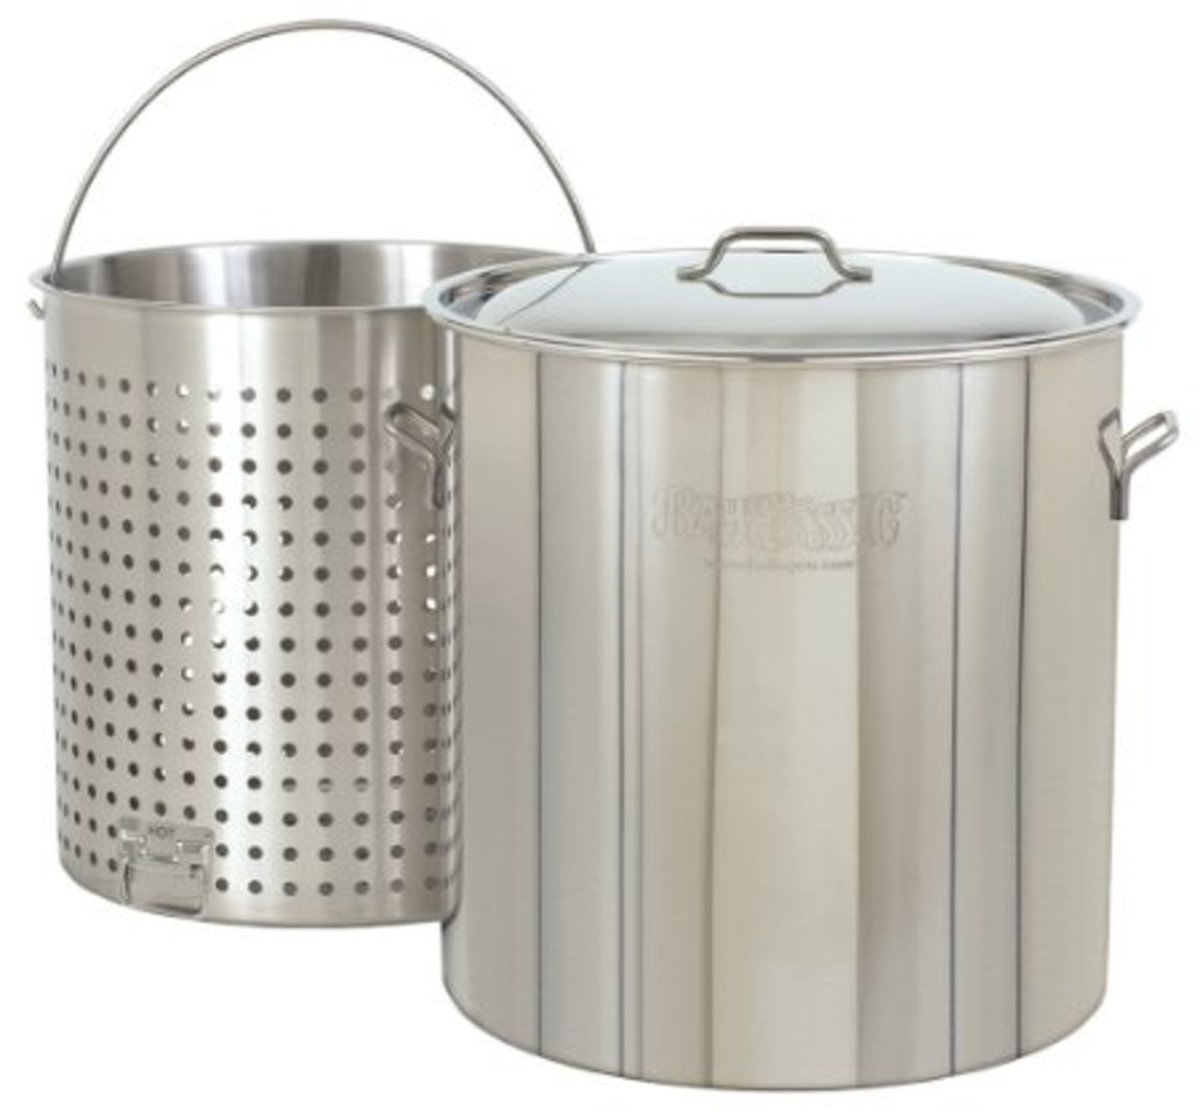 Stainless Steel Lobster/Stock Pot